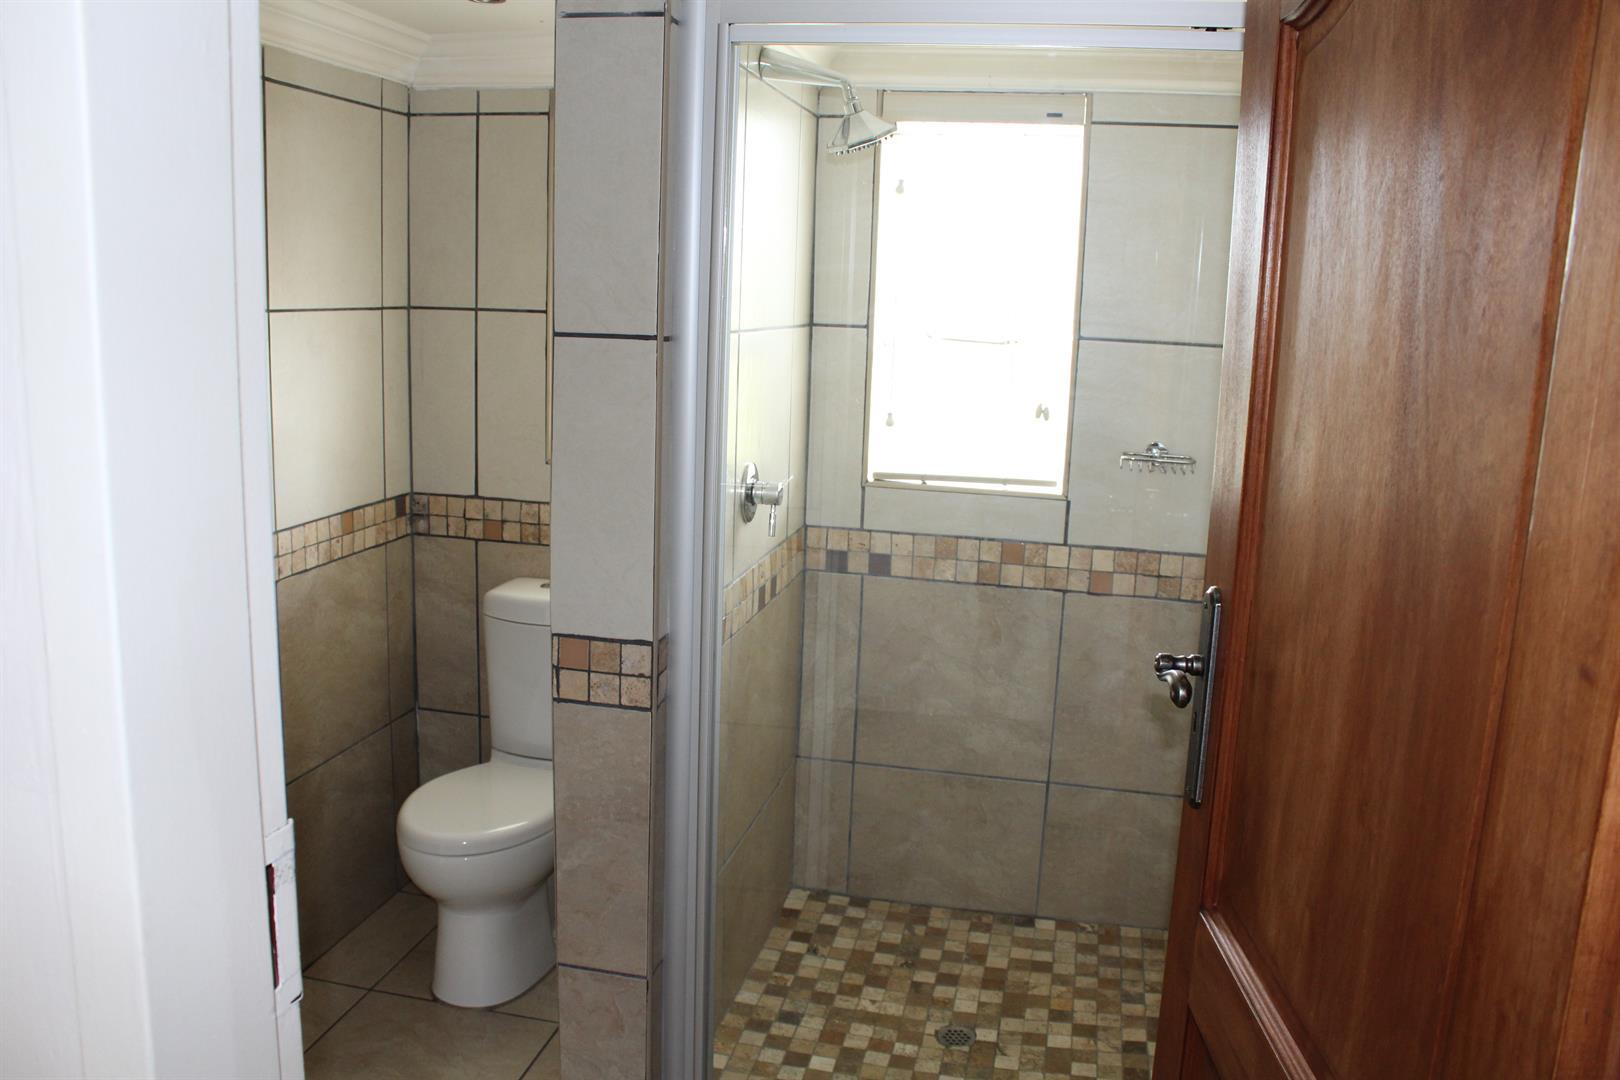 Potchefstroom Central property for sale. Ref No: 13431827. Picture no 13